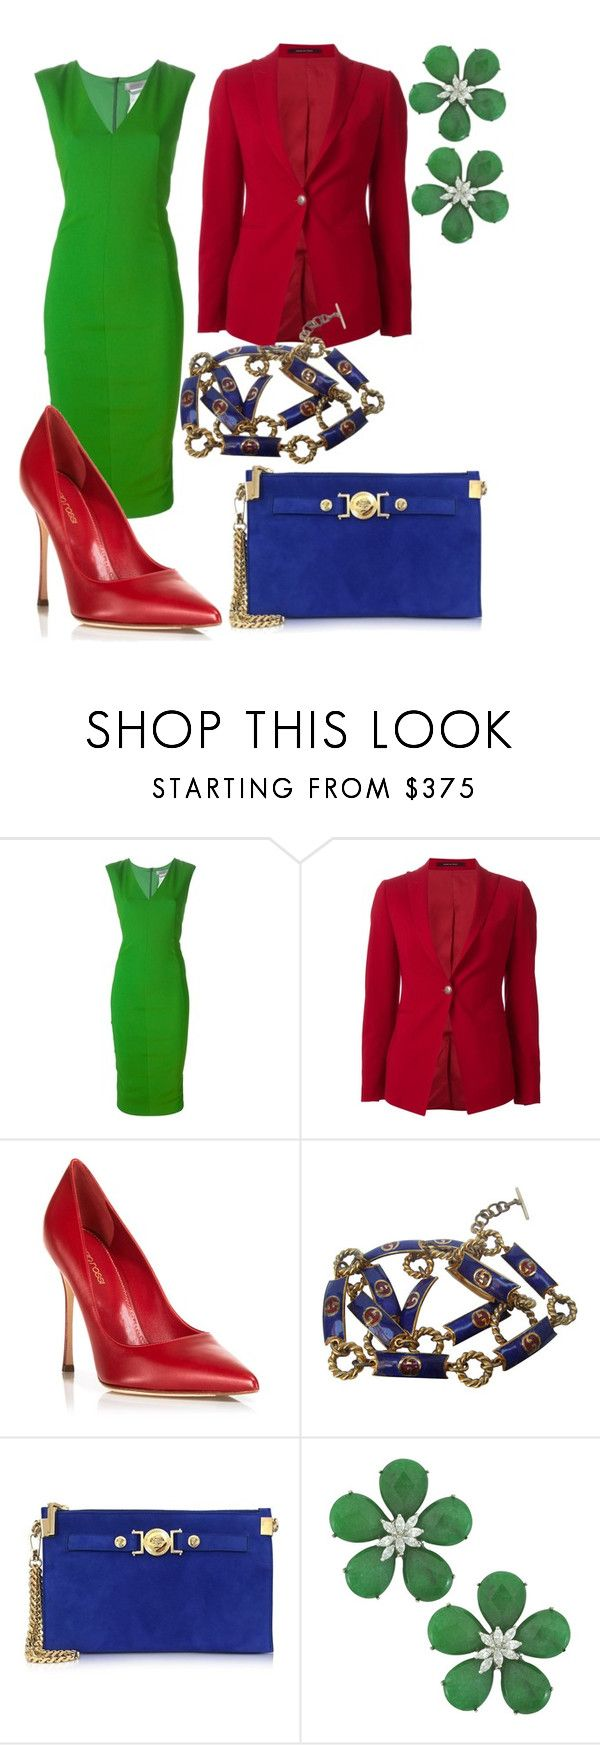 """""""Untitled #9"""" by zlata-miklashevich ❤ liked on Polyvore featuring beauty, Sportmax, Tagliatore, Sergio Rossi, Gucci, Versace and Siman Tu"""